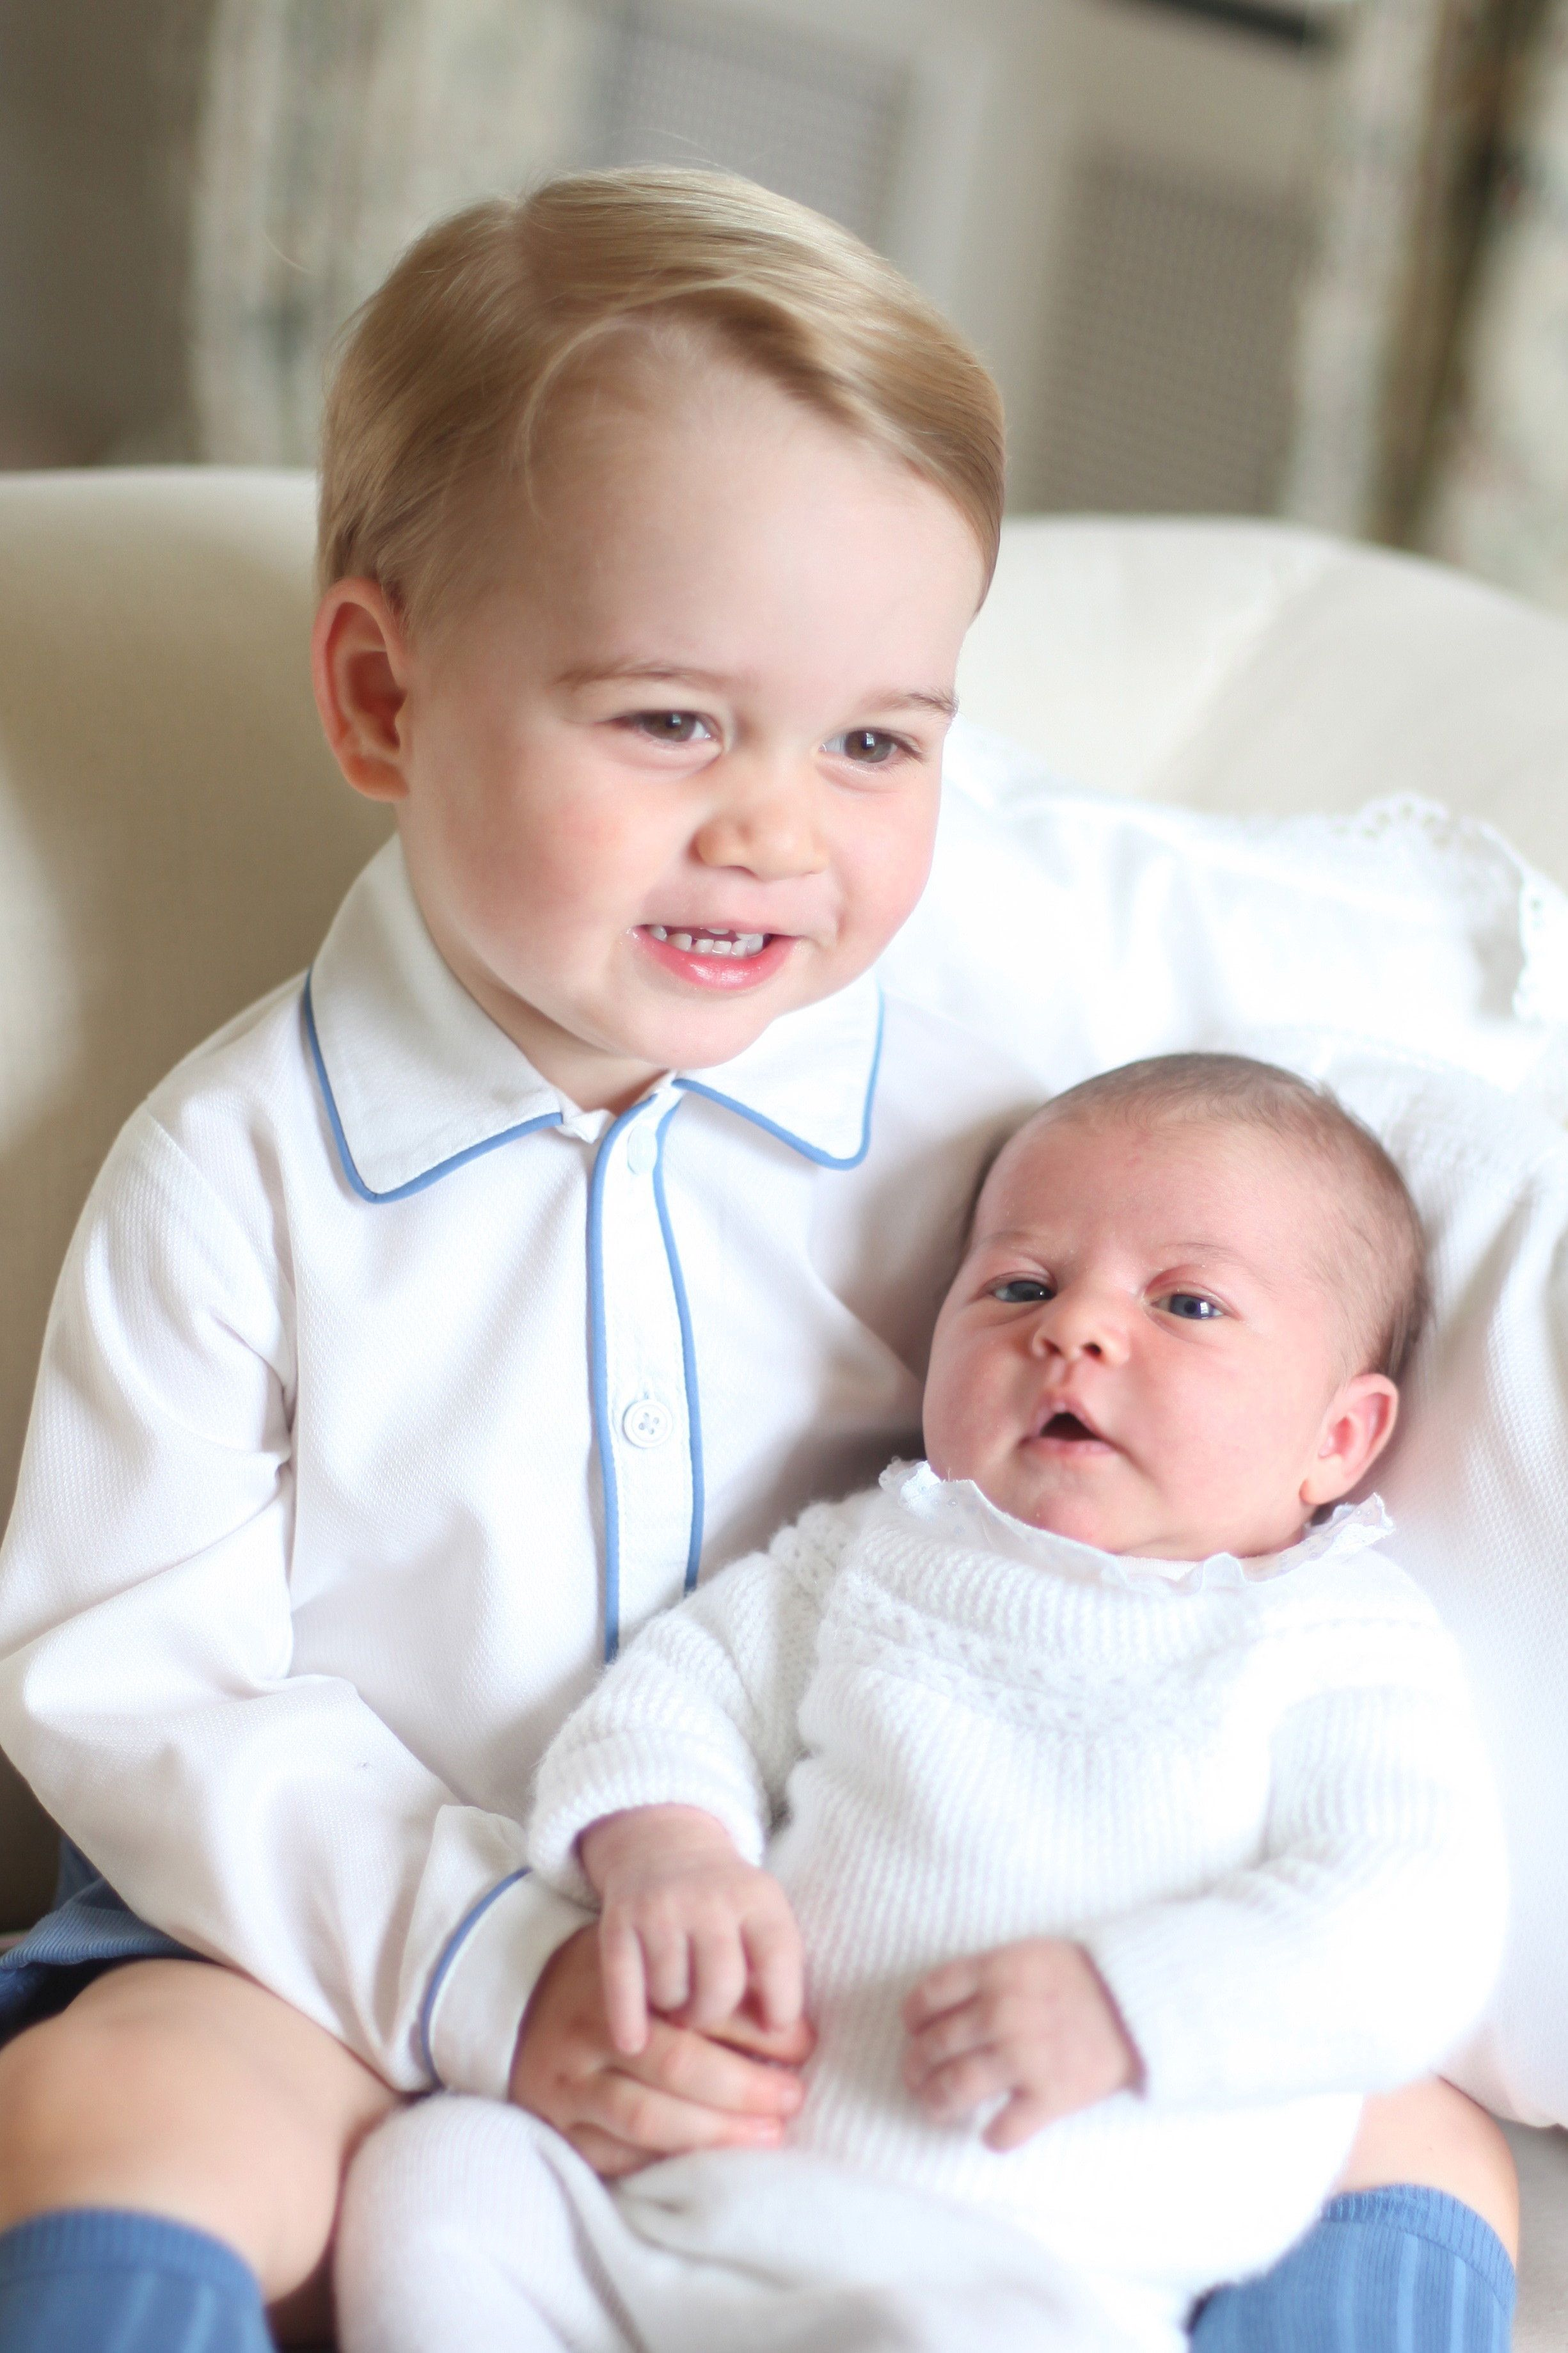 Prince George and Princess Charlottein a photo taken by the Duchess of Cambridge in mid-May 2015 at Anmer Hall in Norfo